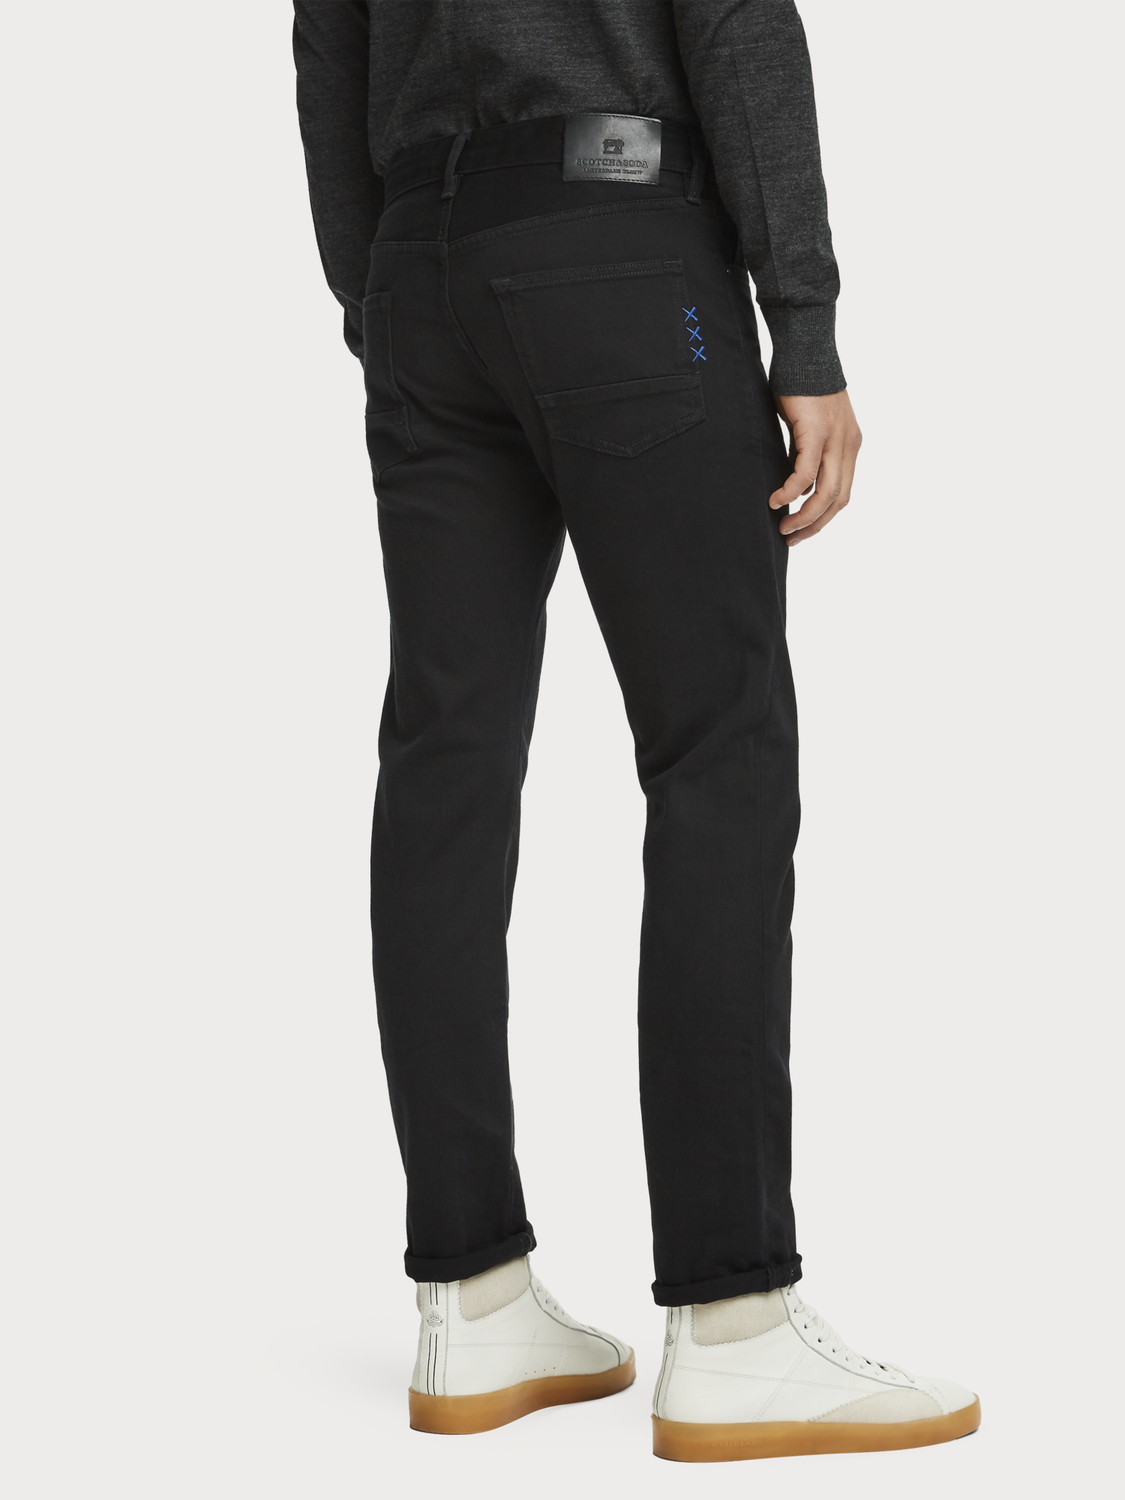 Hombre Ralston - Stay Black | Regular slim fit